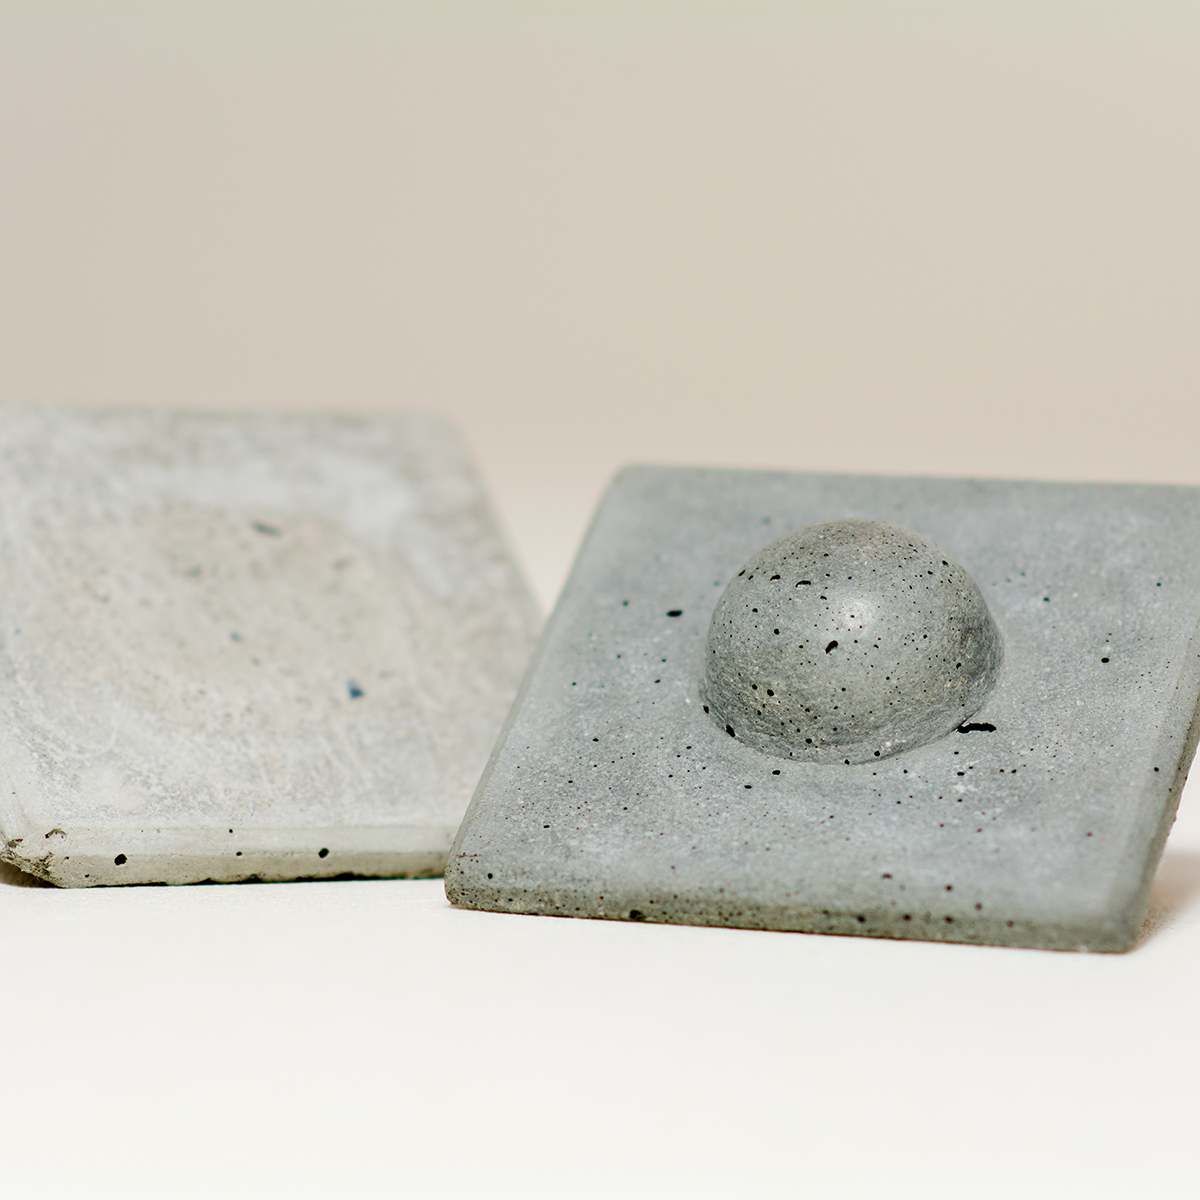 Concrete Braille Tile by Constructed Matter